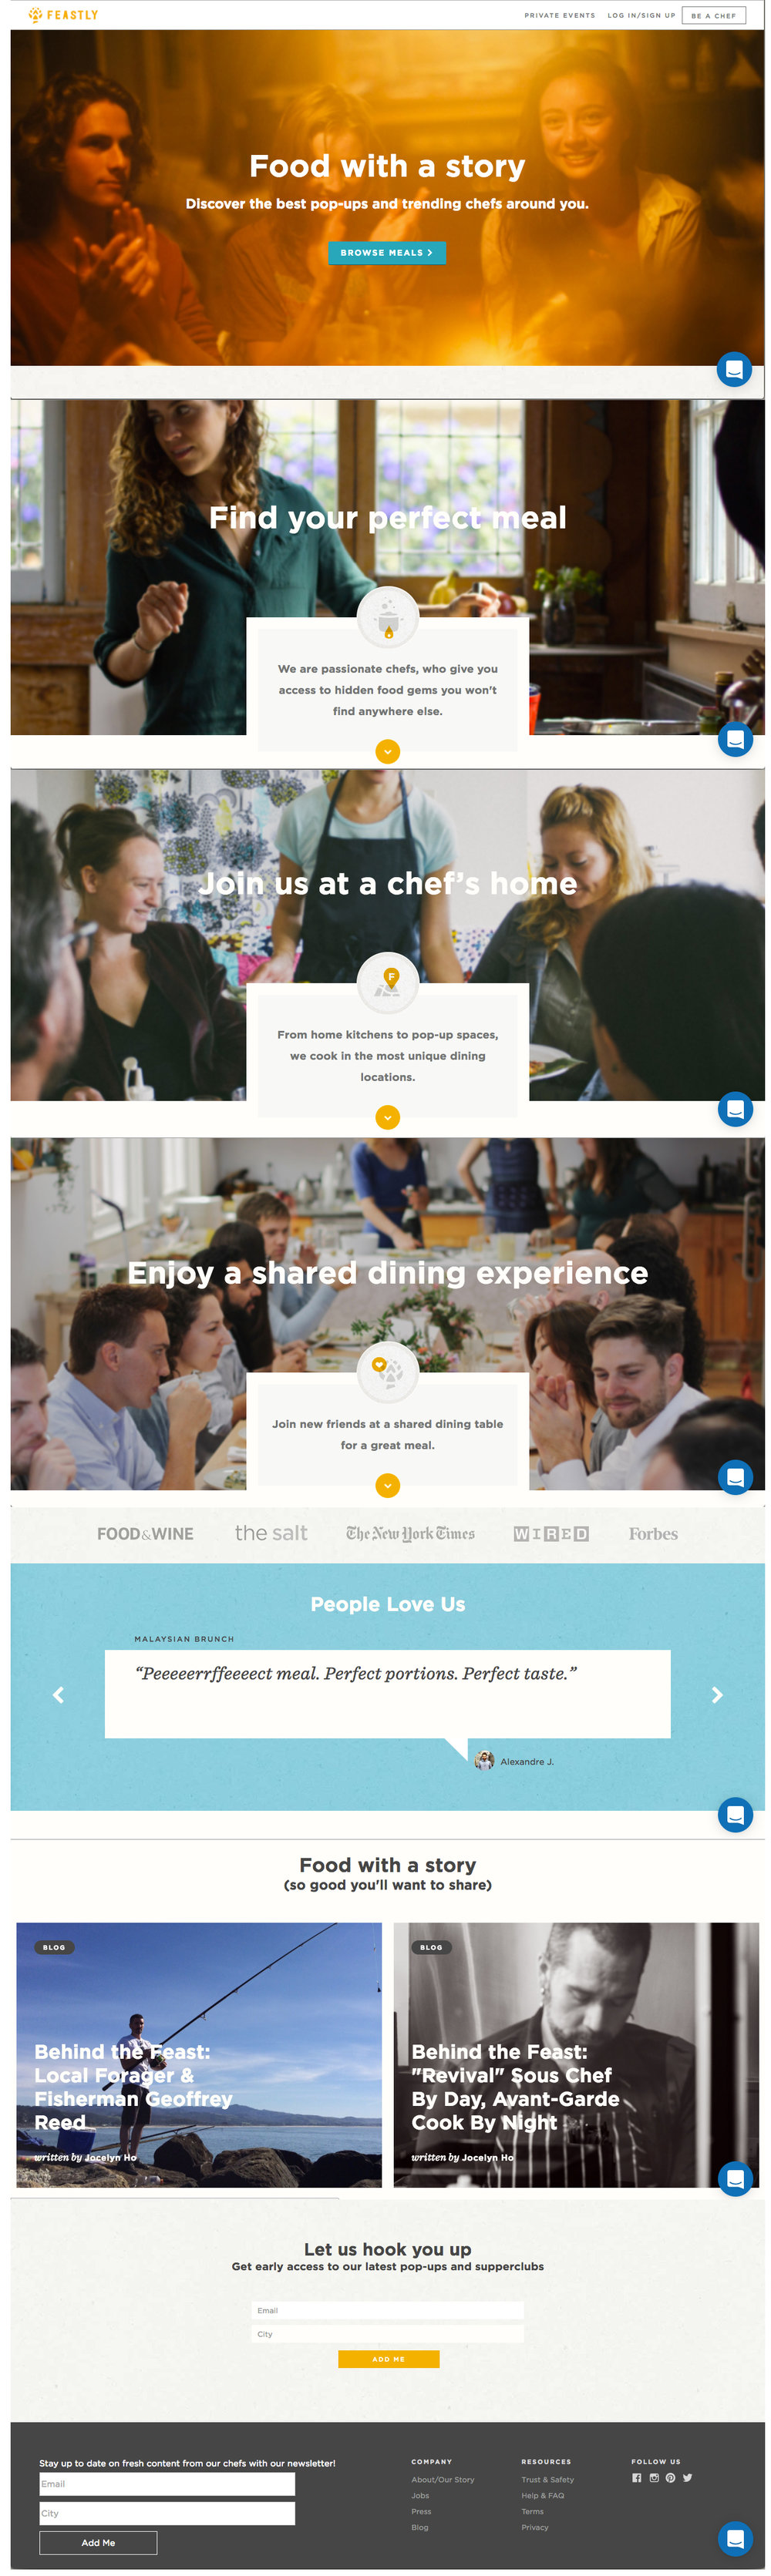 Original landing page (click for full view)